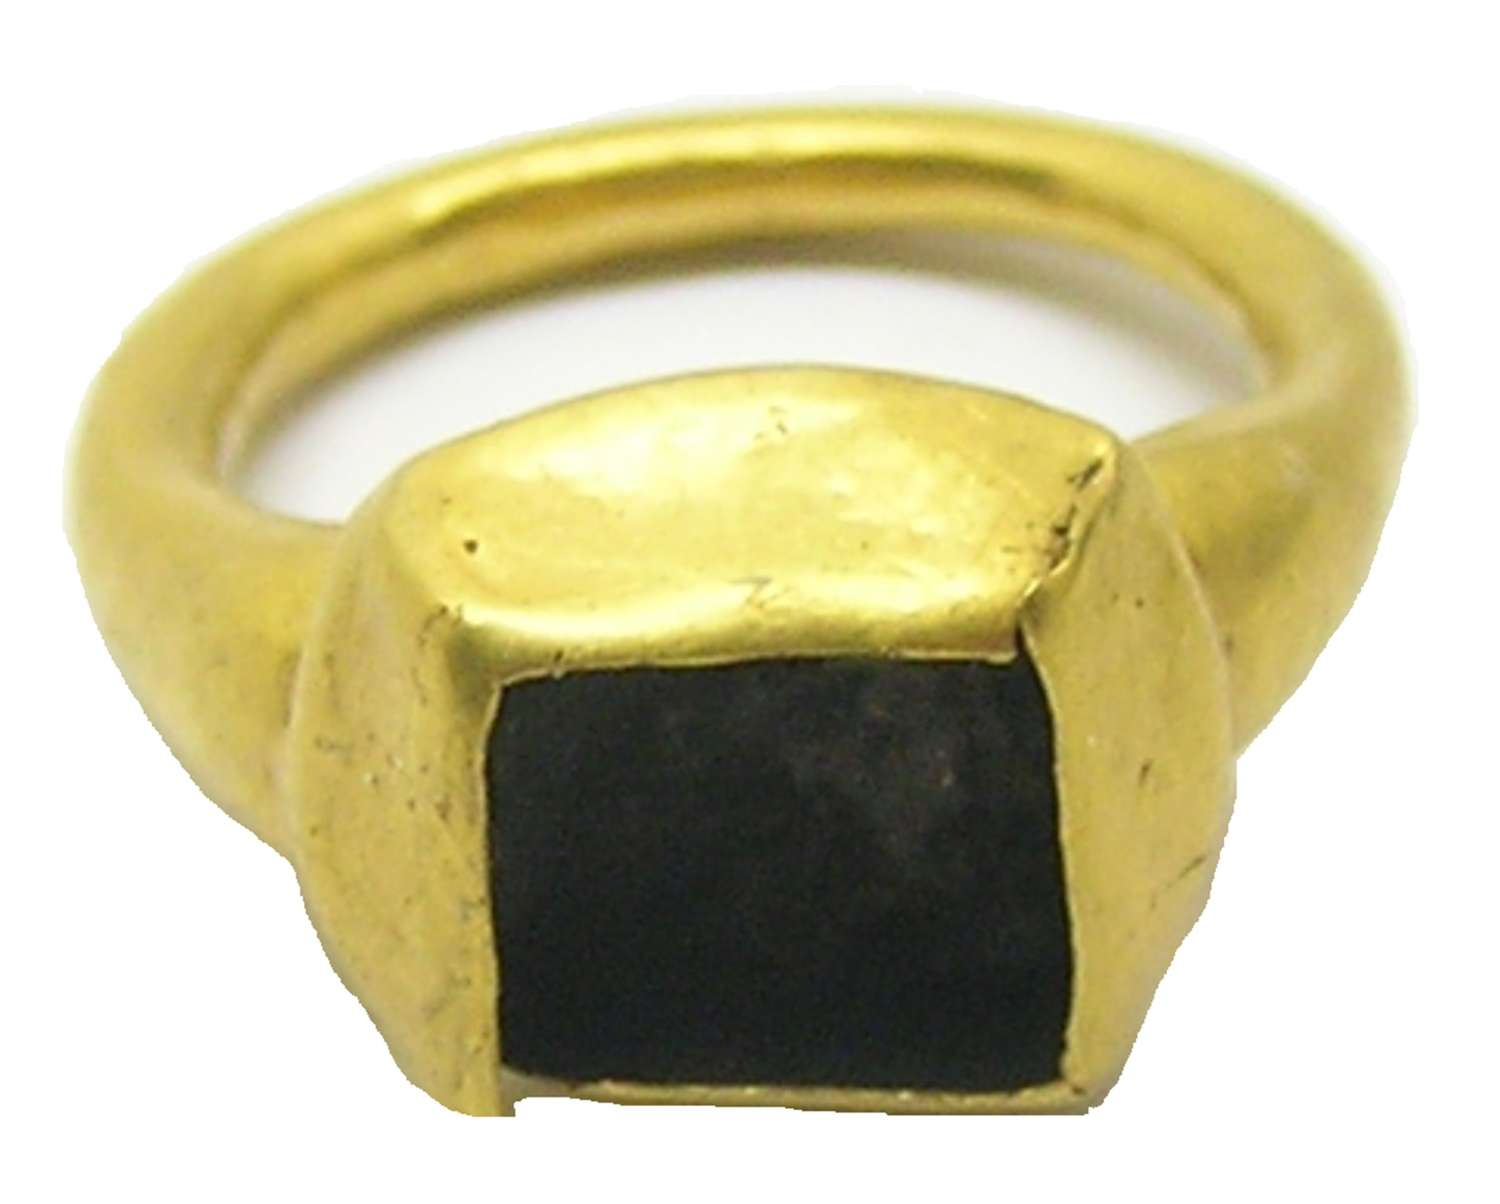 Late Medieval Tudor period gold finger ring